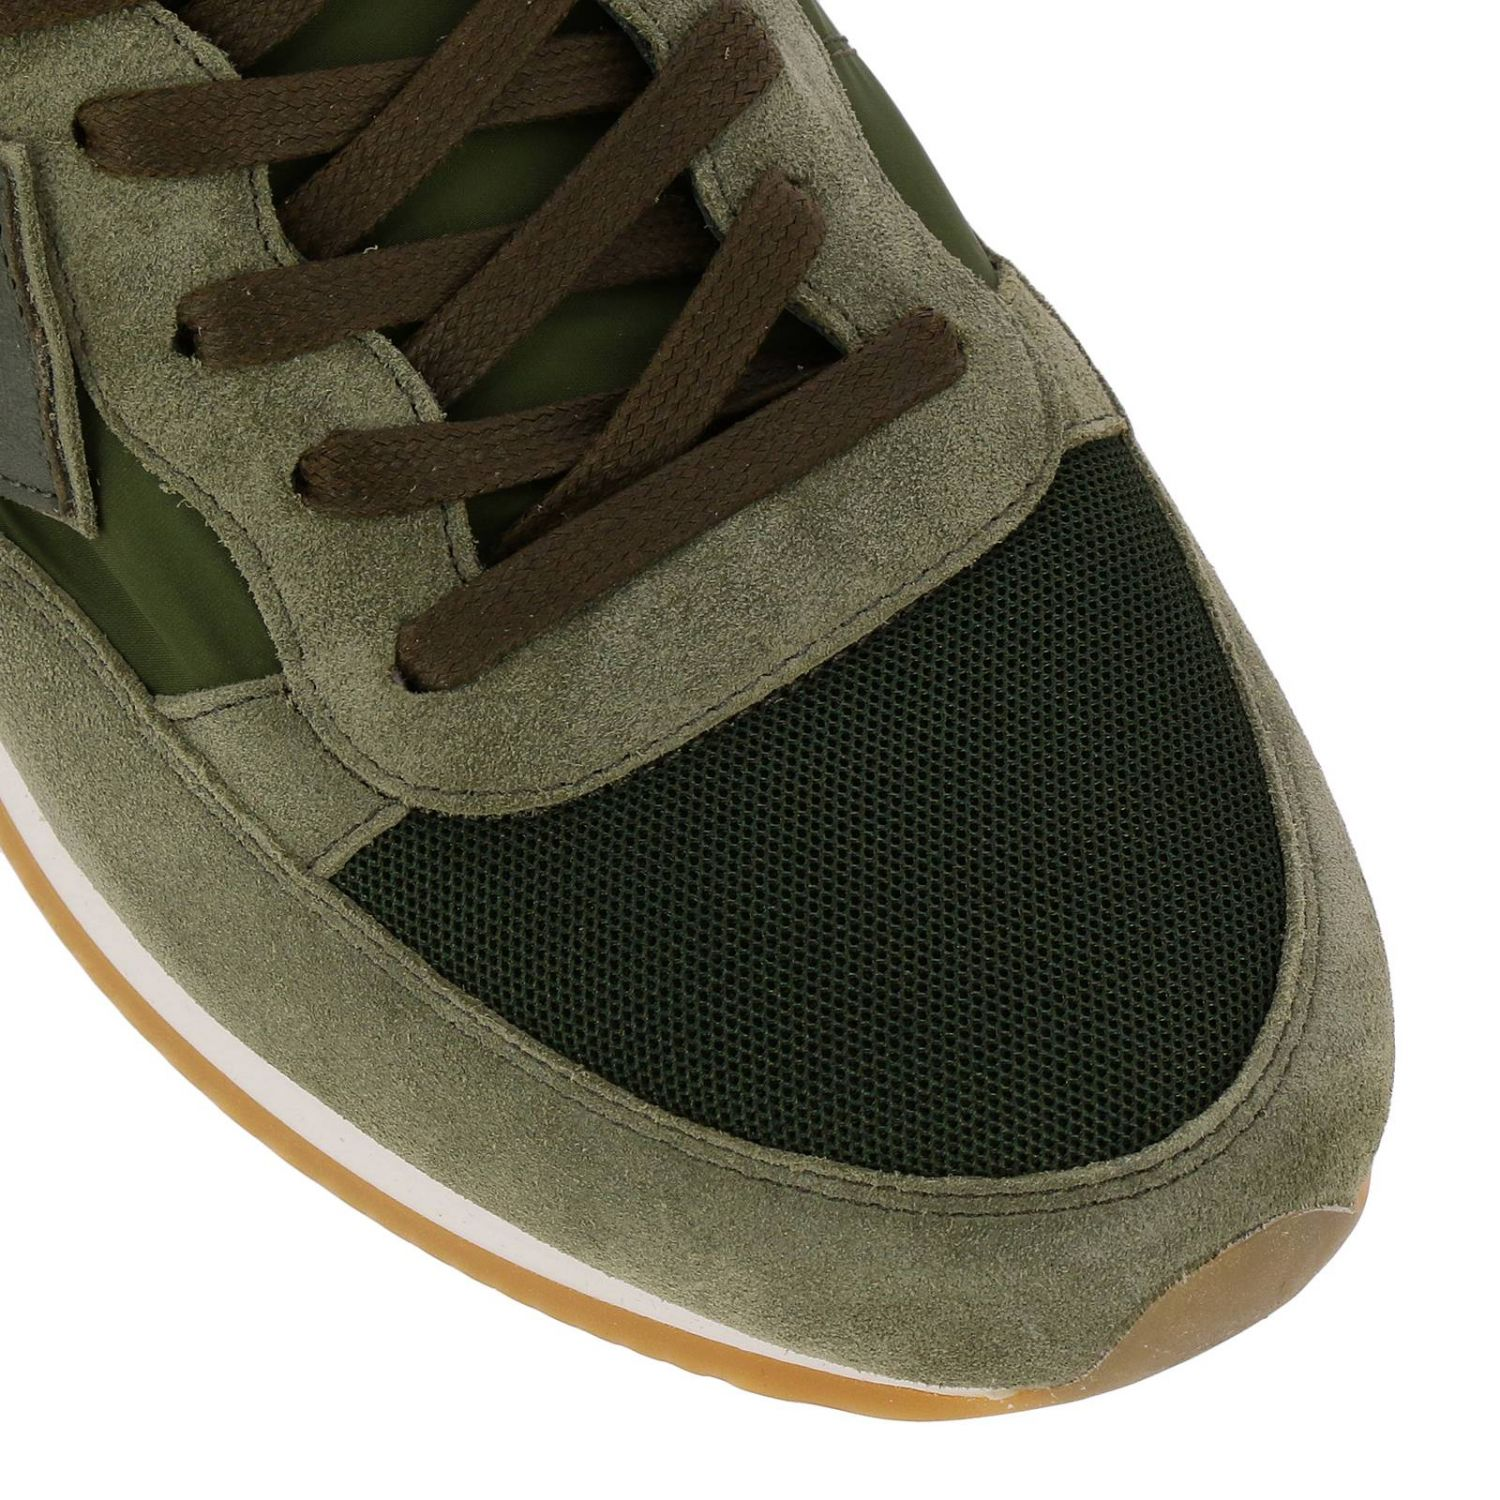 Shoes men Philippe Model military 3